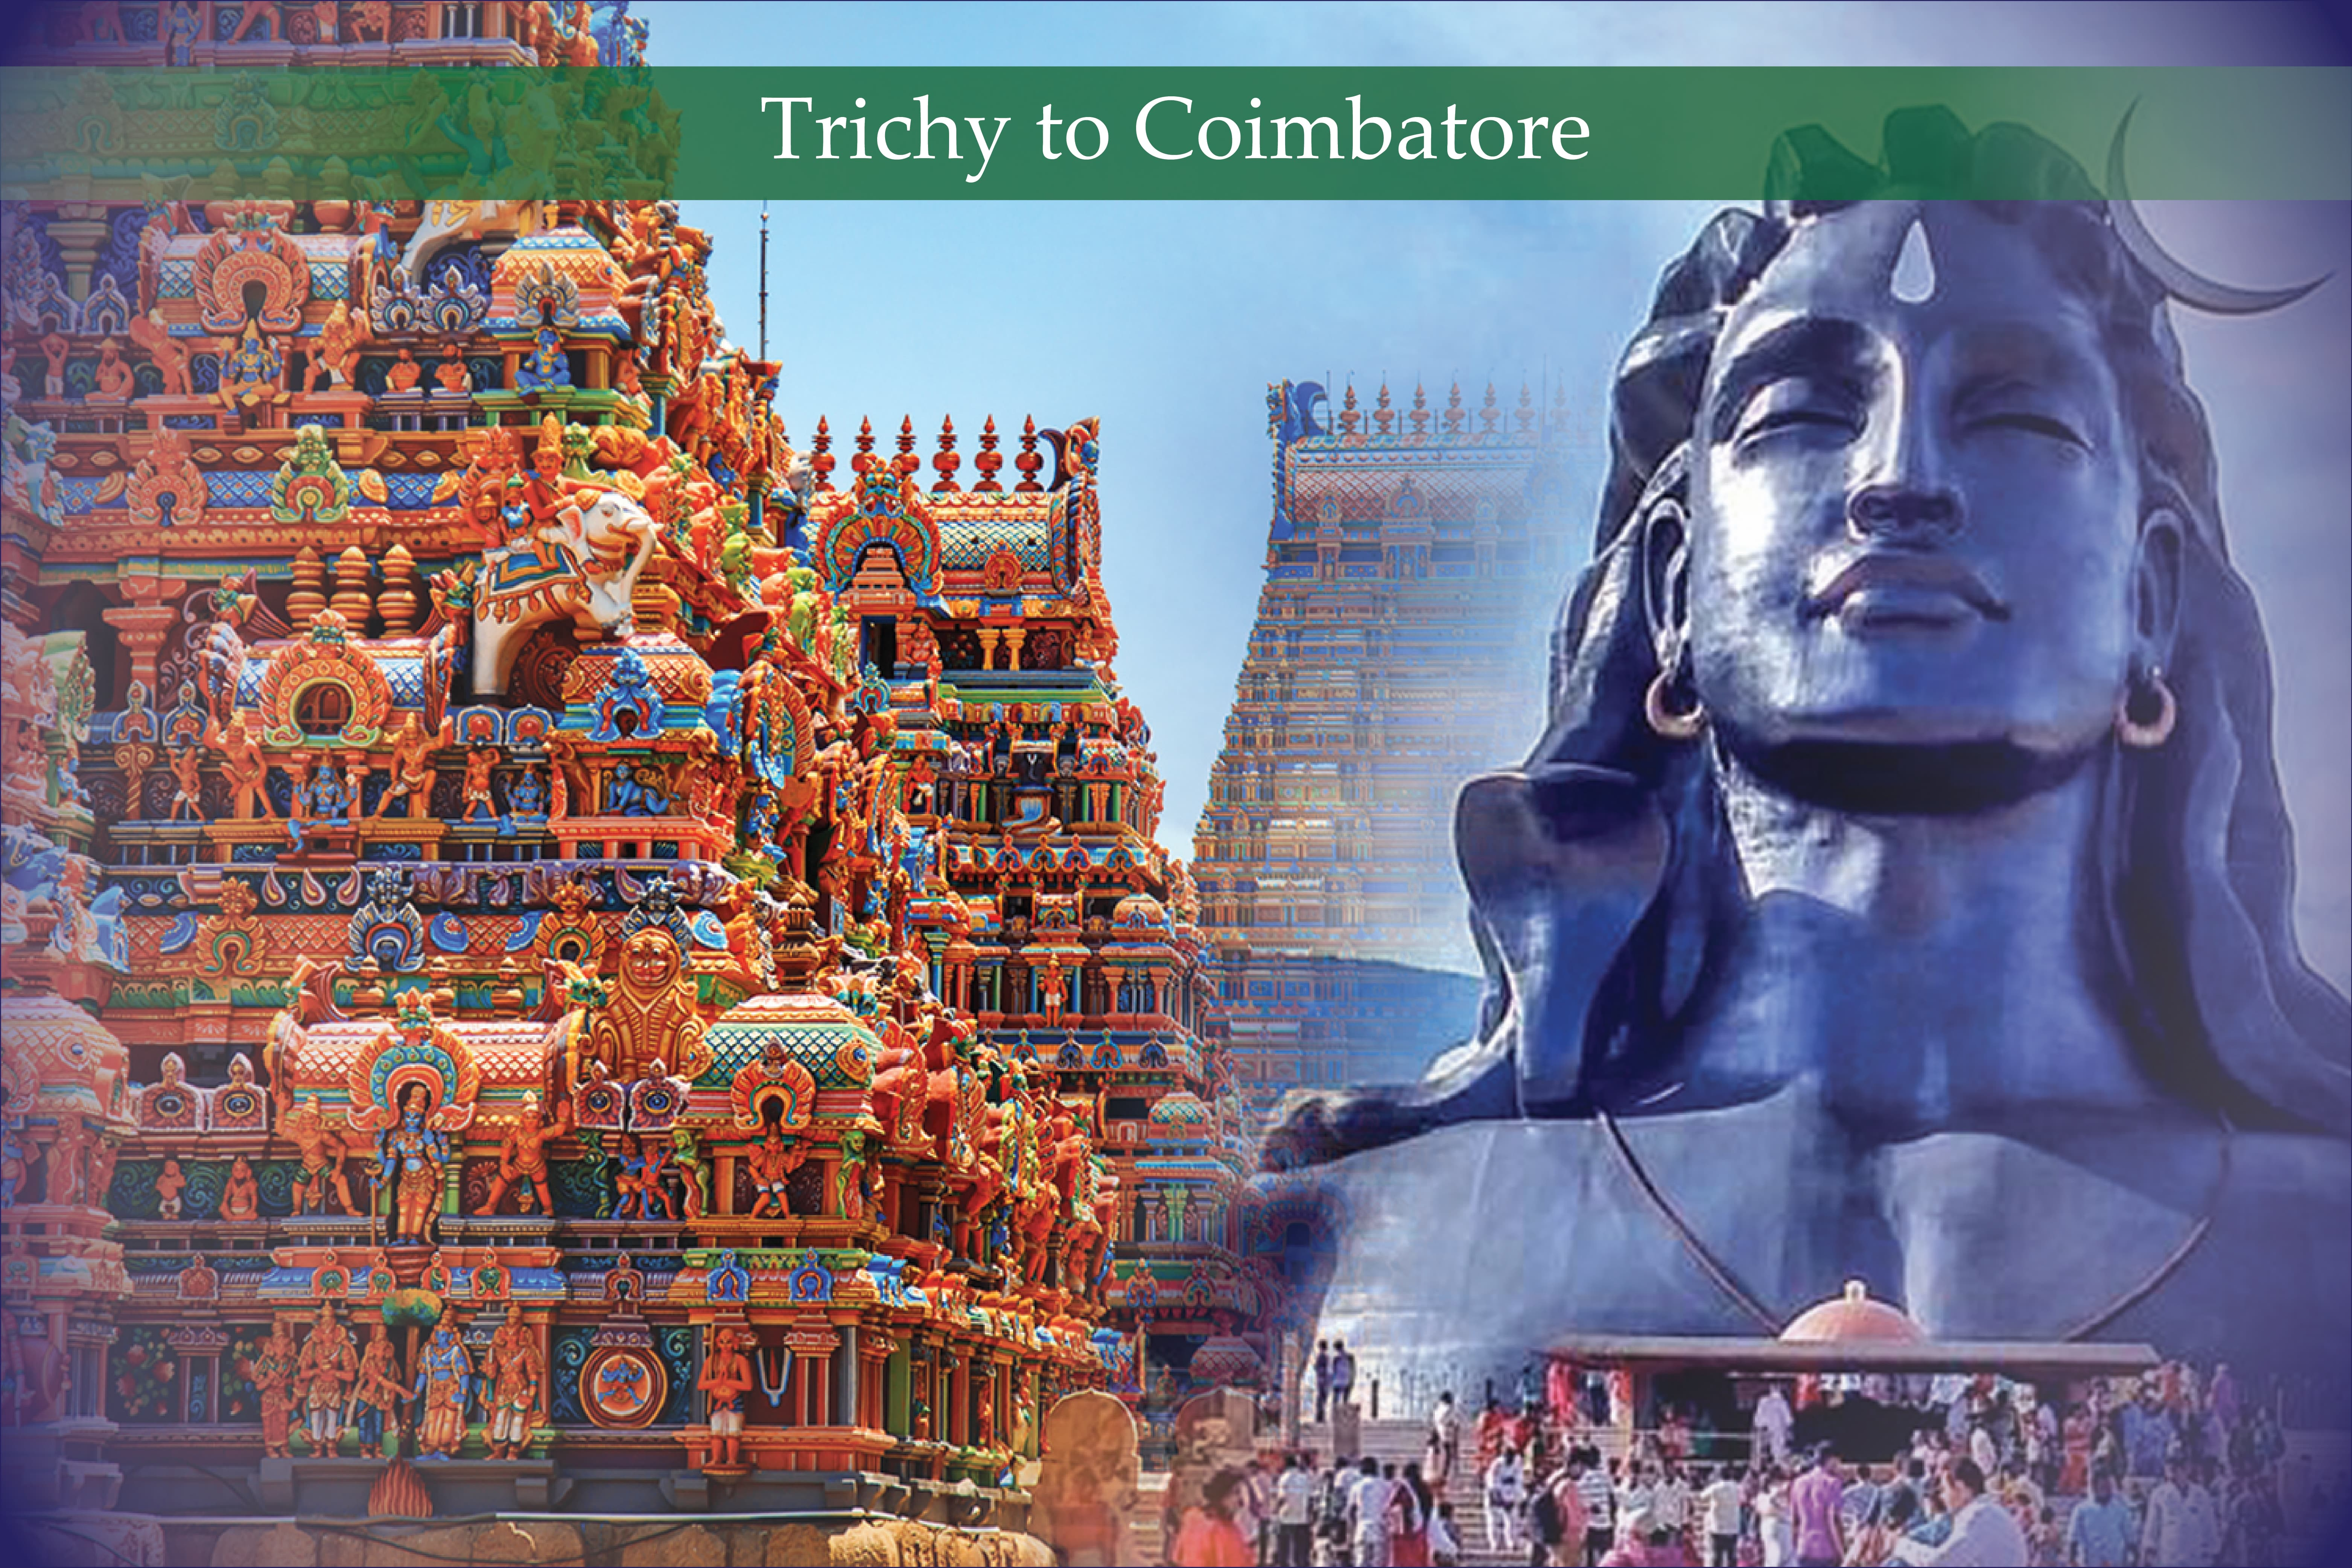 trichy to coimbatore cab